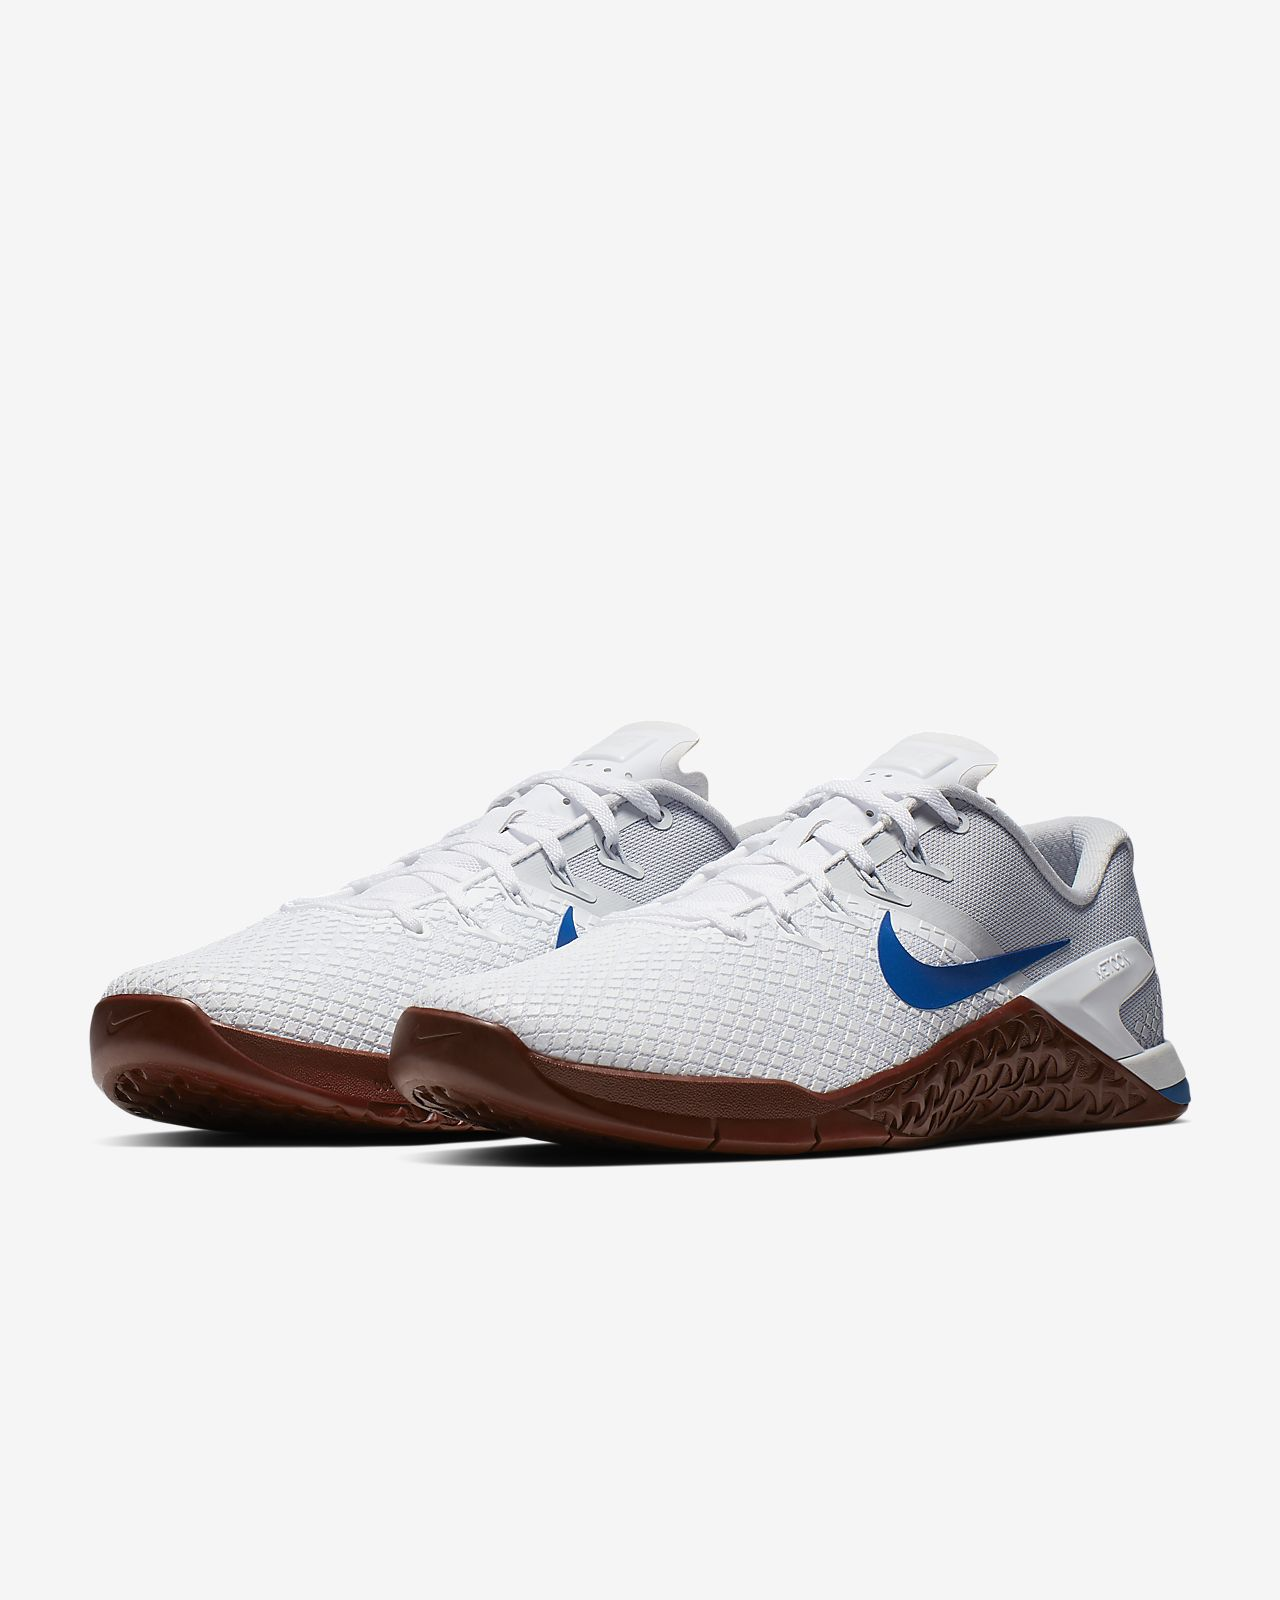 sports shoes aa097 86ef6 ... Chaussure de training Nike Metcon 4 XD pour Homme